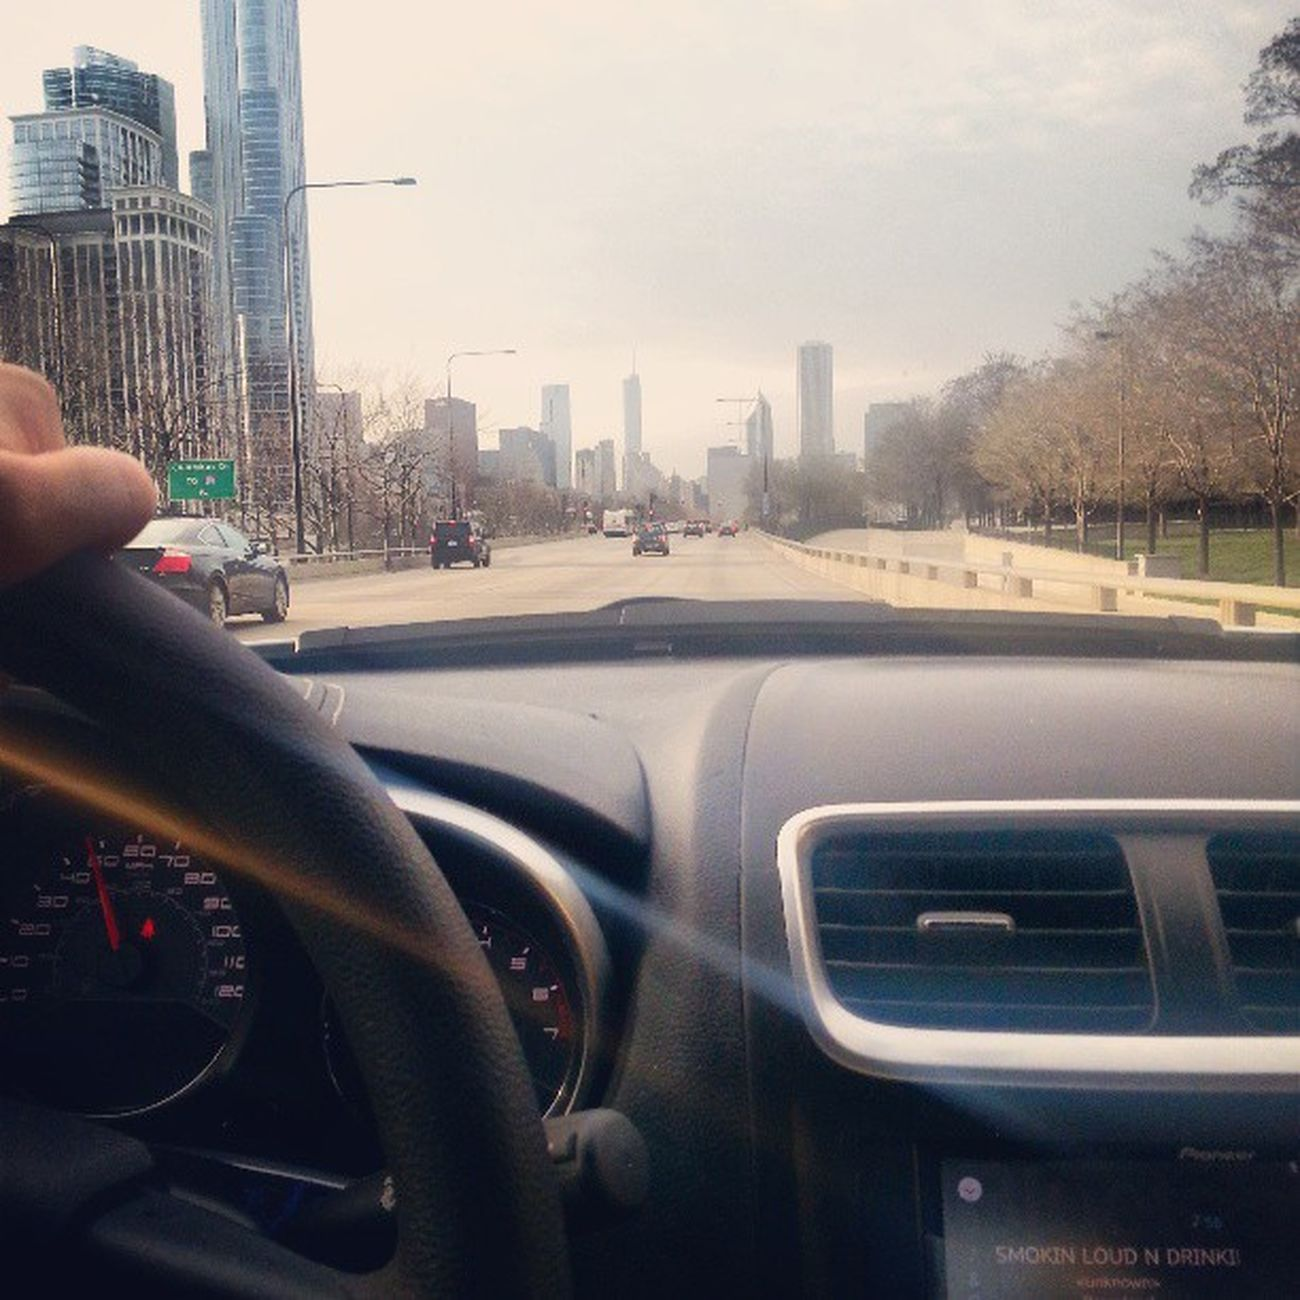 Ridin down Lakeshore banging my new single prod by @pyrothespaceboy Chicago ForNoReasonTheMixtape drops May 15th